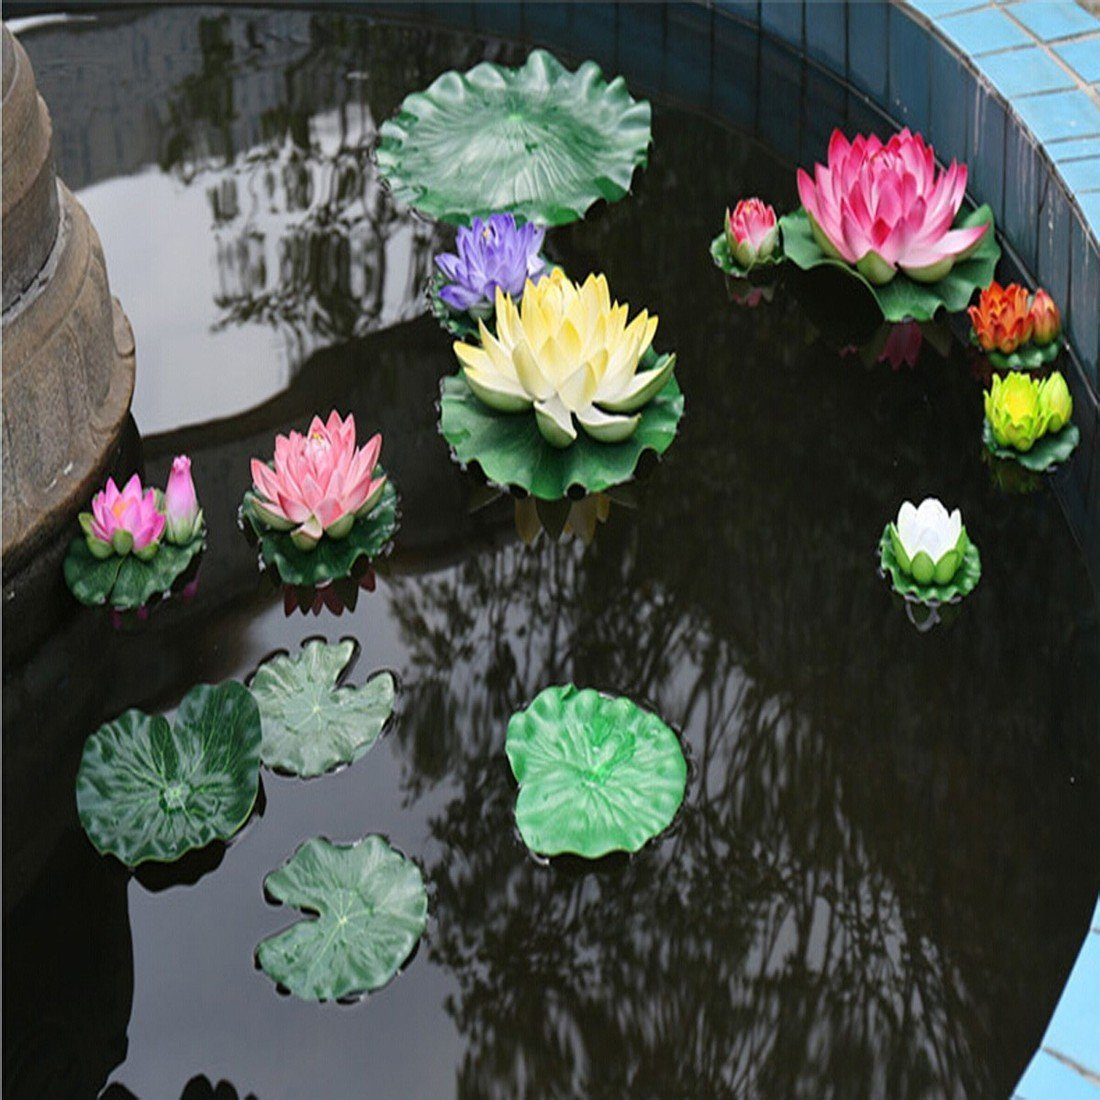 5PCS Set Artificial EVA Floating Foam Aquarium Foliage Floating Lotus Leaf Decor Pool Fish Tank Pond Leaves Home Garden Decoration by Roberts